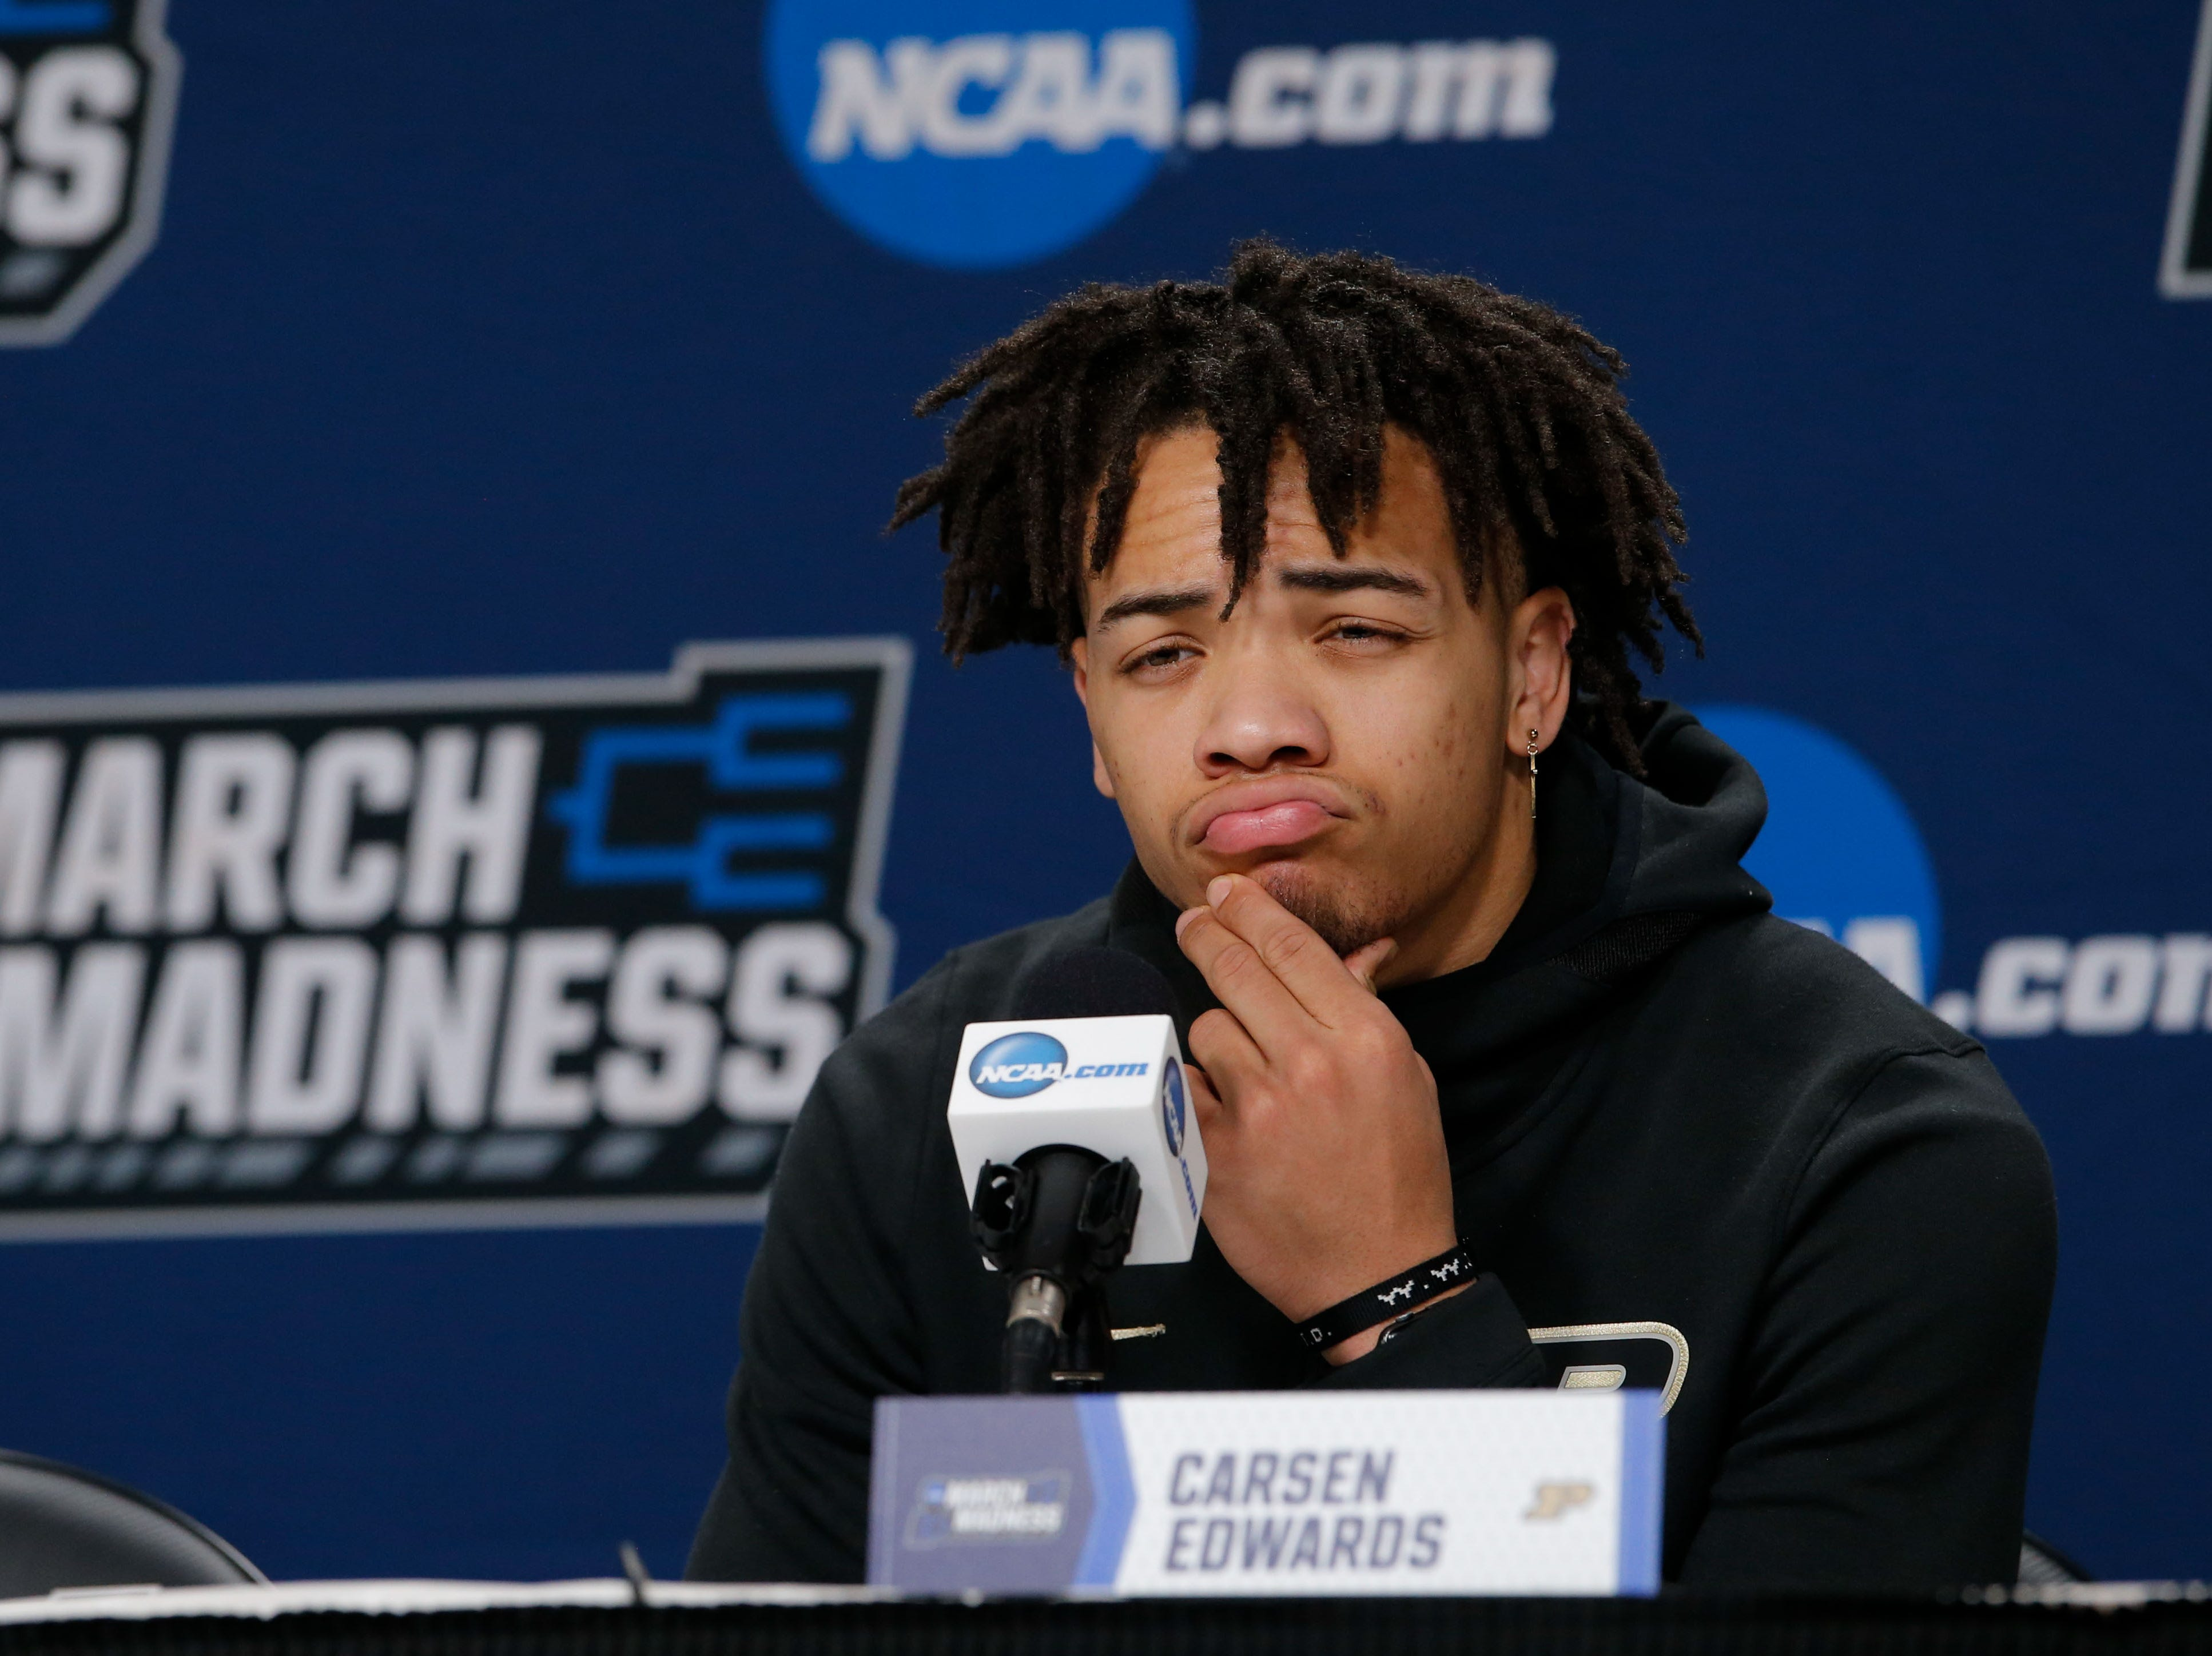 Mar 20, 2019; Hartford, CT, USA; Purdue Boilermakers guard Carsen Edwards (3) talks with media during practice before the first round of the 2019 NCAA Tournament at XL Center. Mandatory Credit: David Butler II-USA TODAY Sports